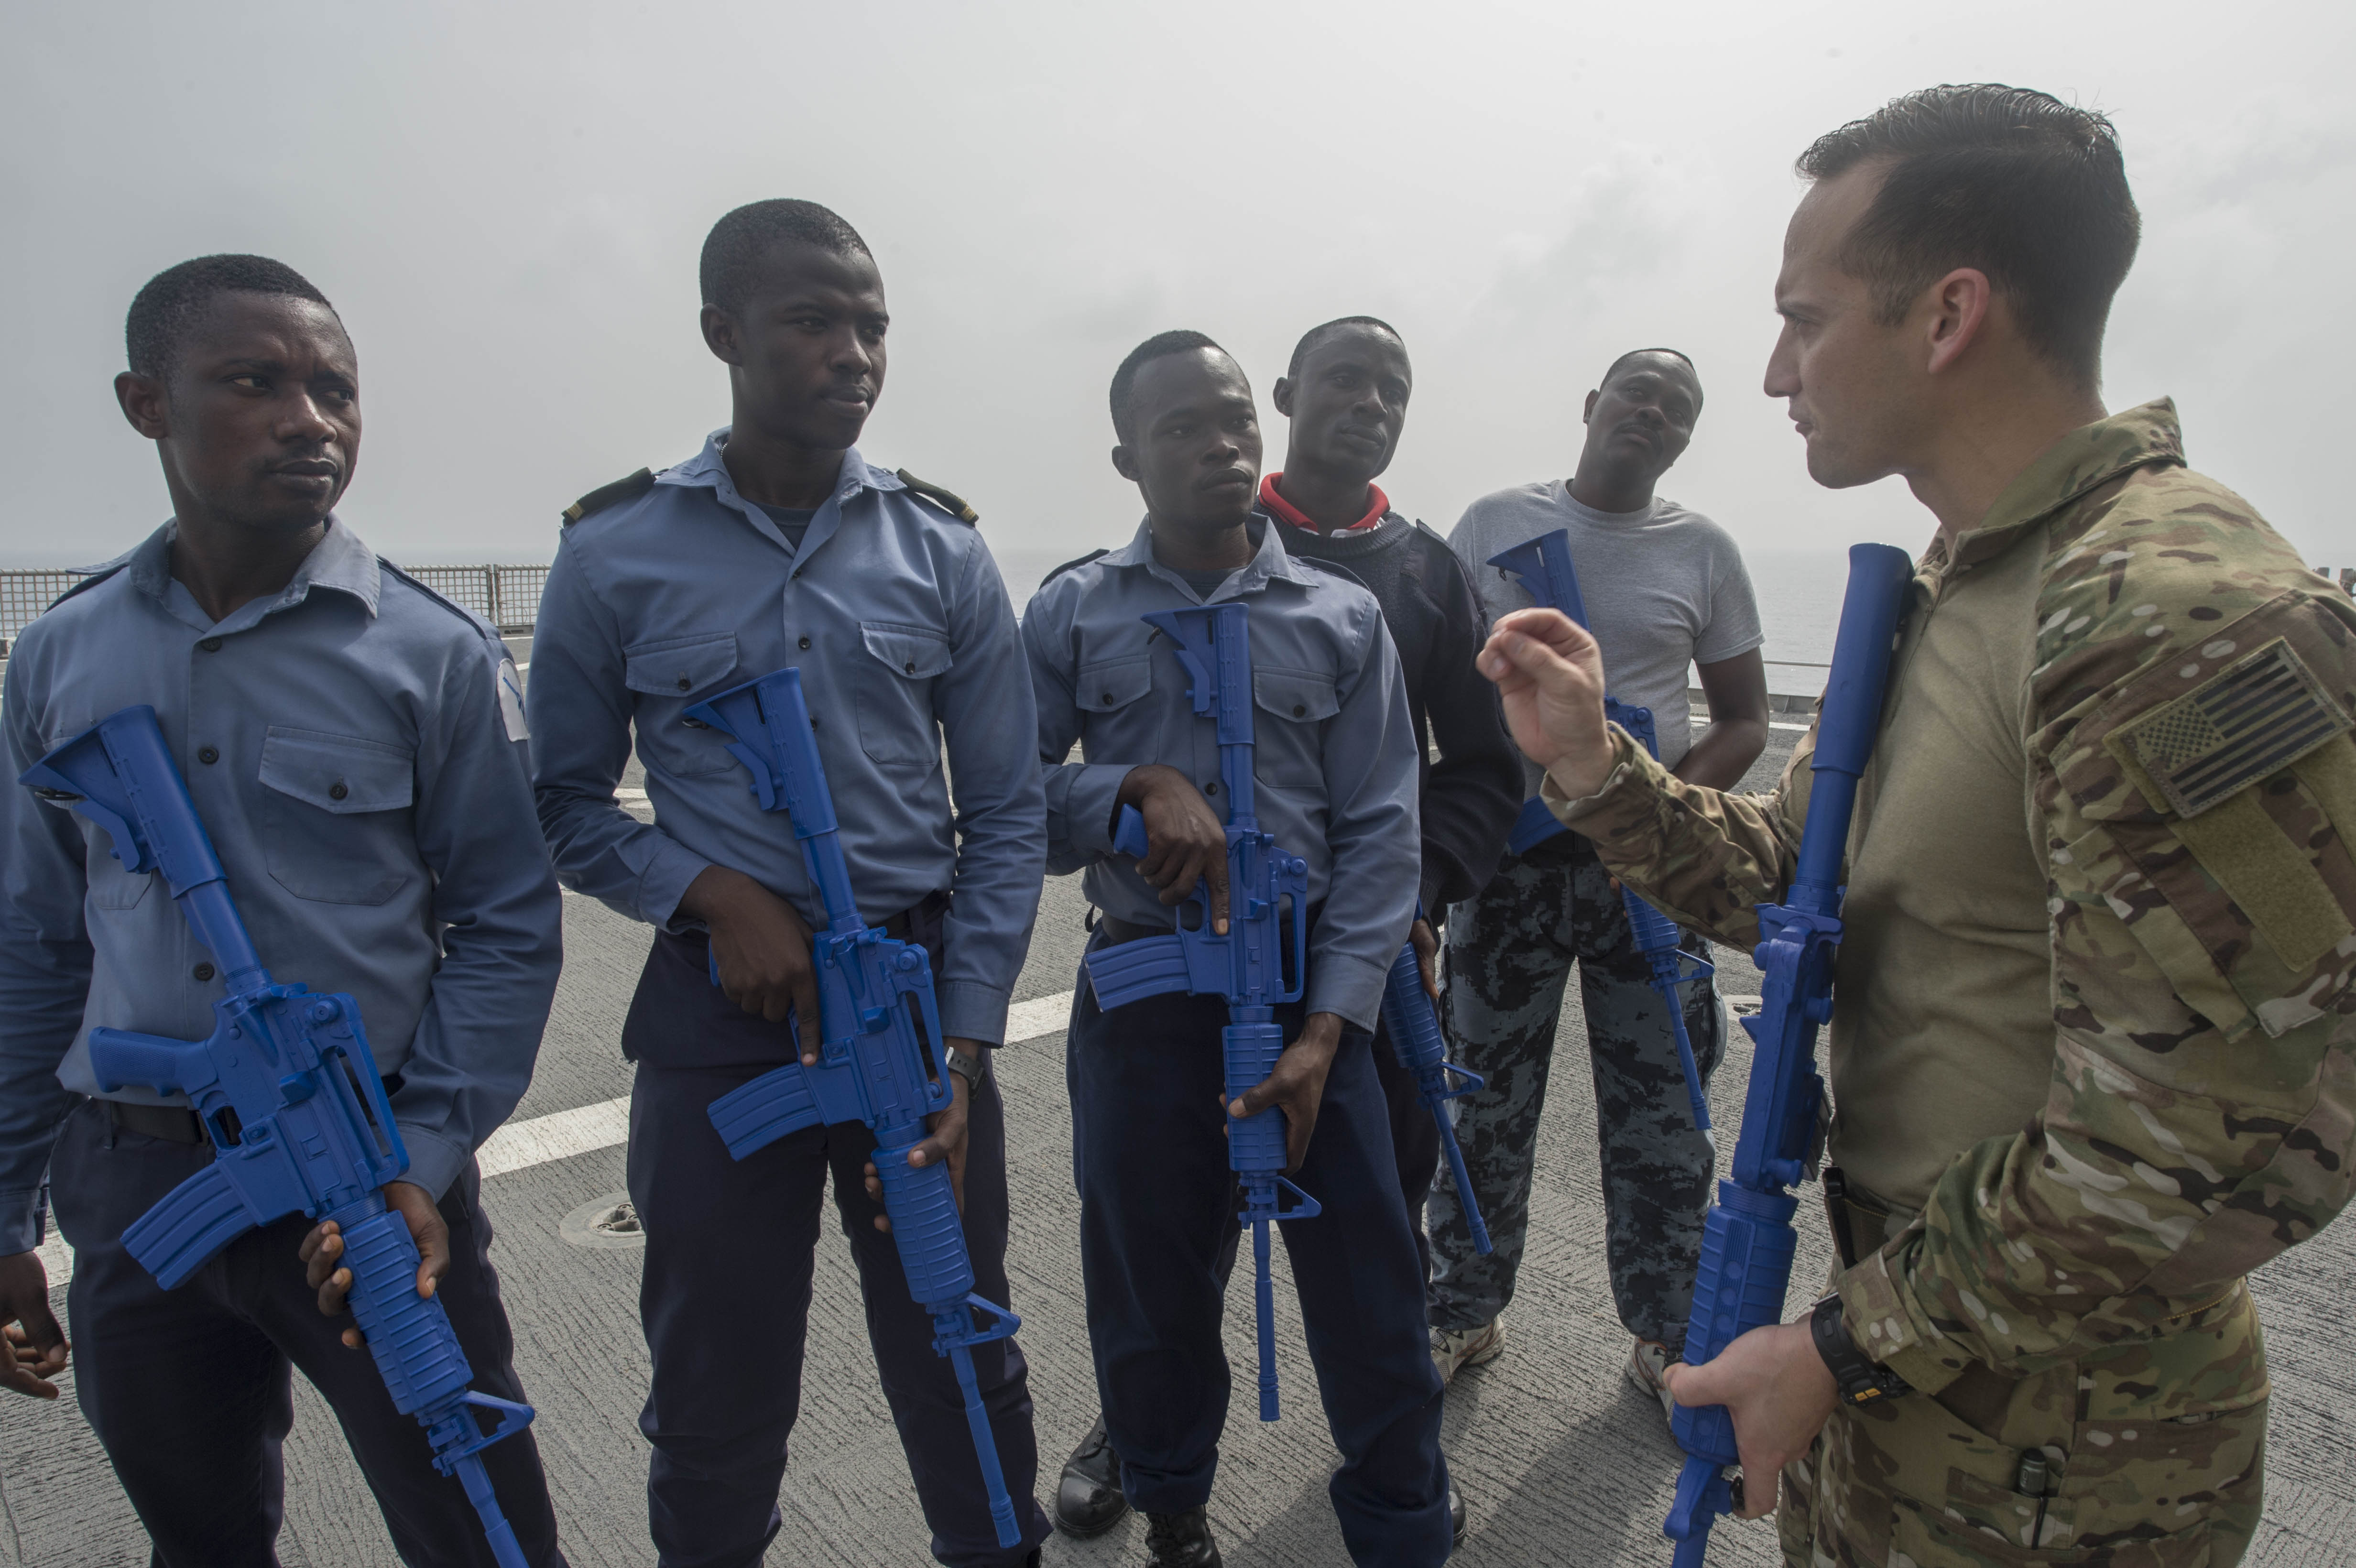 Machinery Technician 2nd Class Paul Avella, a U.S. Coast Guard Tactical Law Enforcement Detachment member, conducts tactical procedures training with the Ghanaian combined boarding team members aboard USNS Spearhead (T-EPF 1) Feb. 10, 2016. The Military Sealift Command expeditionary fast transport vessel USNS Spearhead is on a scheduled deployment in the U.S. 6th Fleet area of operations to support the international collaborative capacity-building program Africa Partnership Station. (U.S. Navy photo by Mass Communication Specialist 3rd Class Amy M. Ressler/Released)